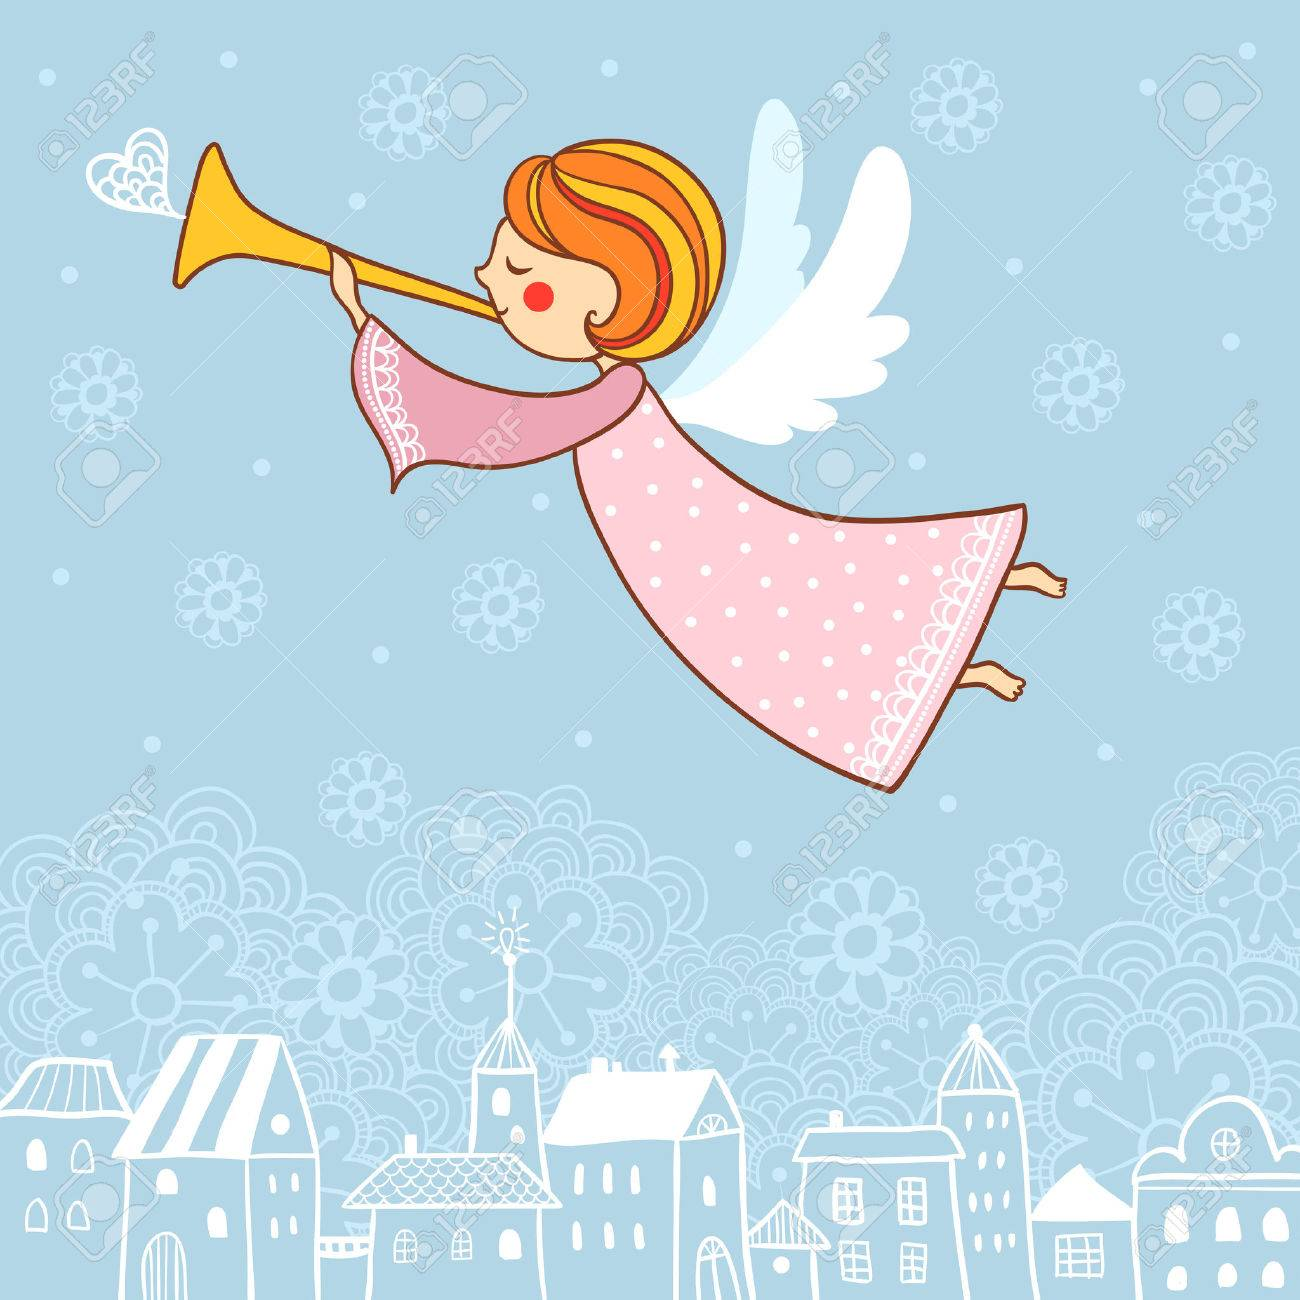 Christmas vector illustration on the theme of the new year. - 47226892